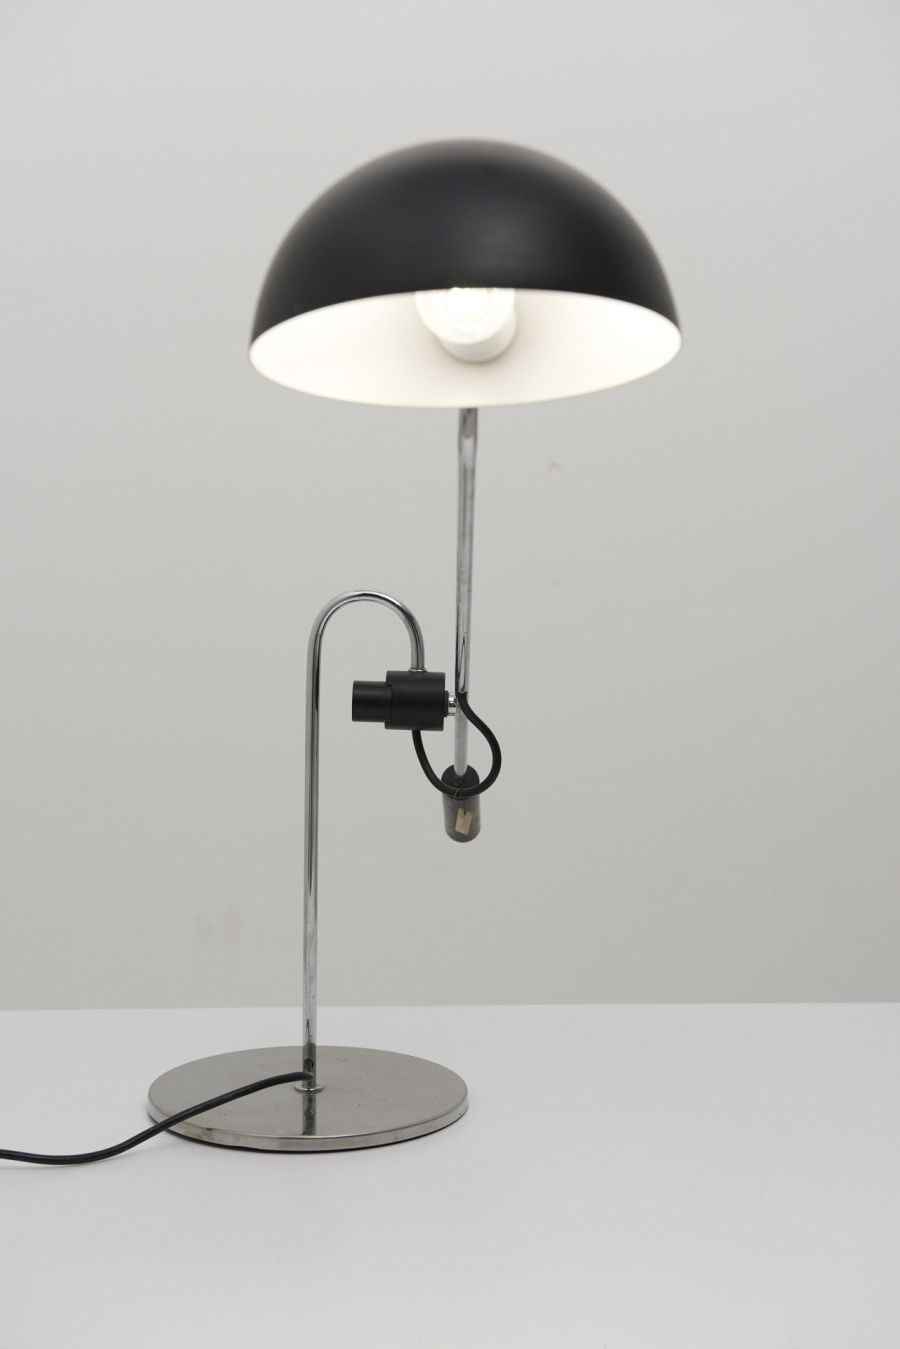 modestfurniture-vintage-2639-desk-lamp-chrome-black-italy03